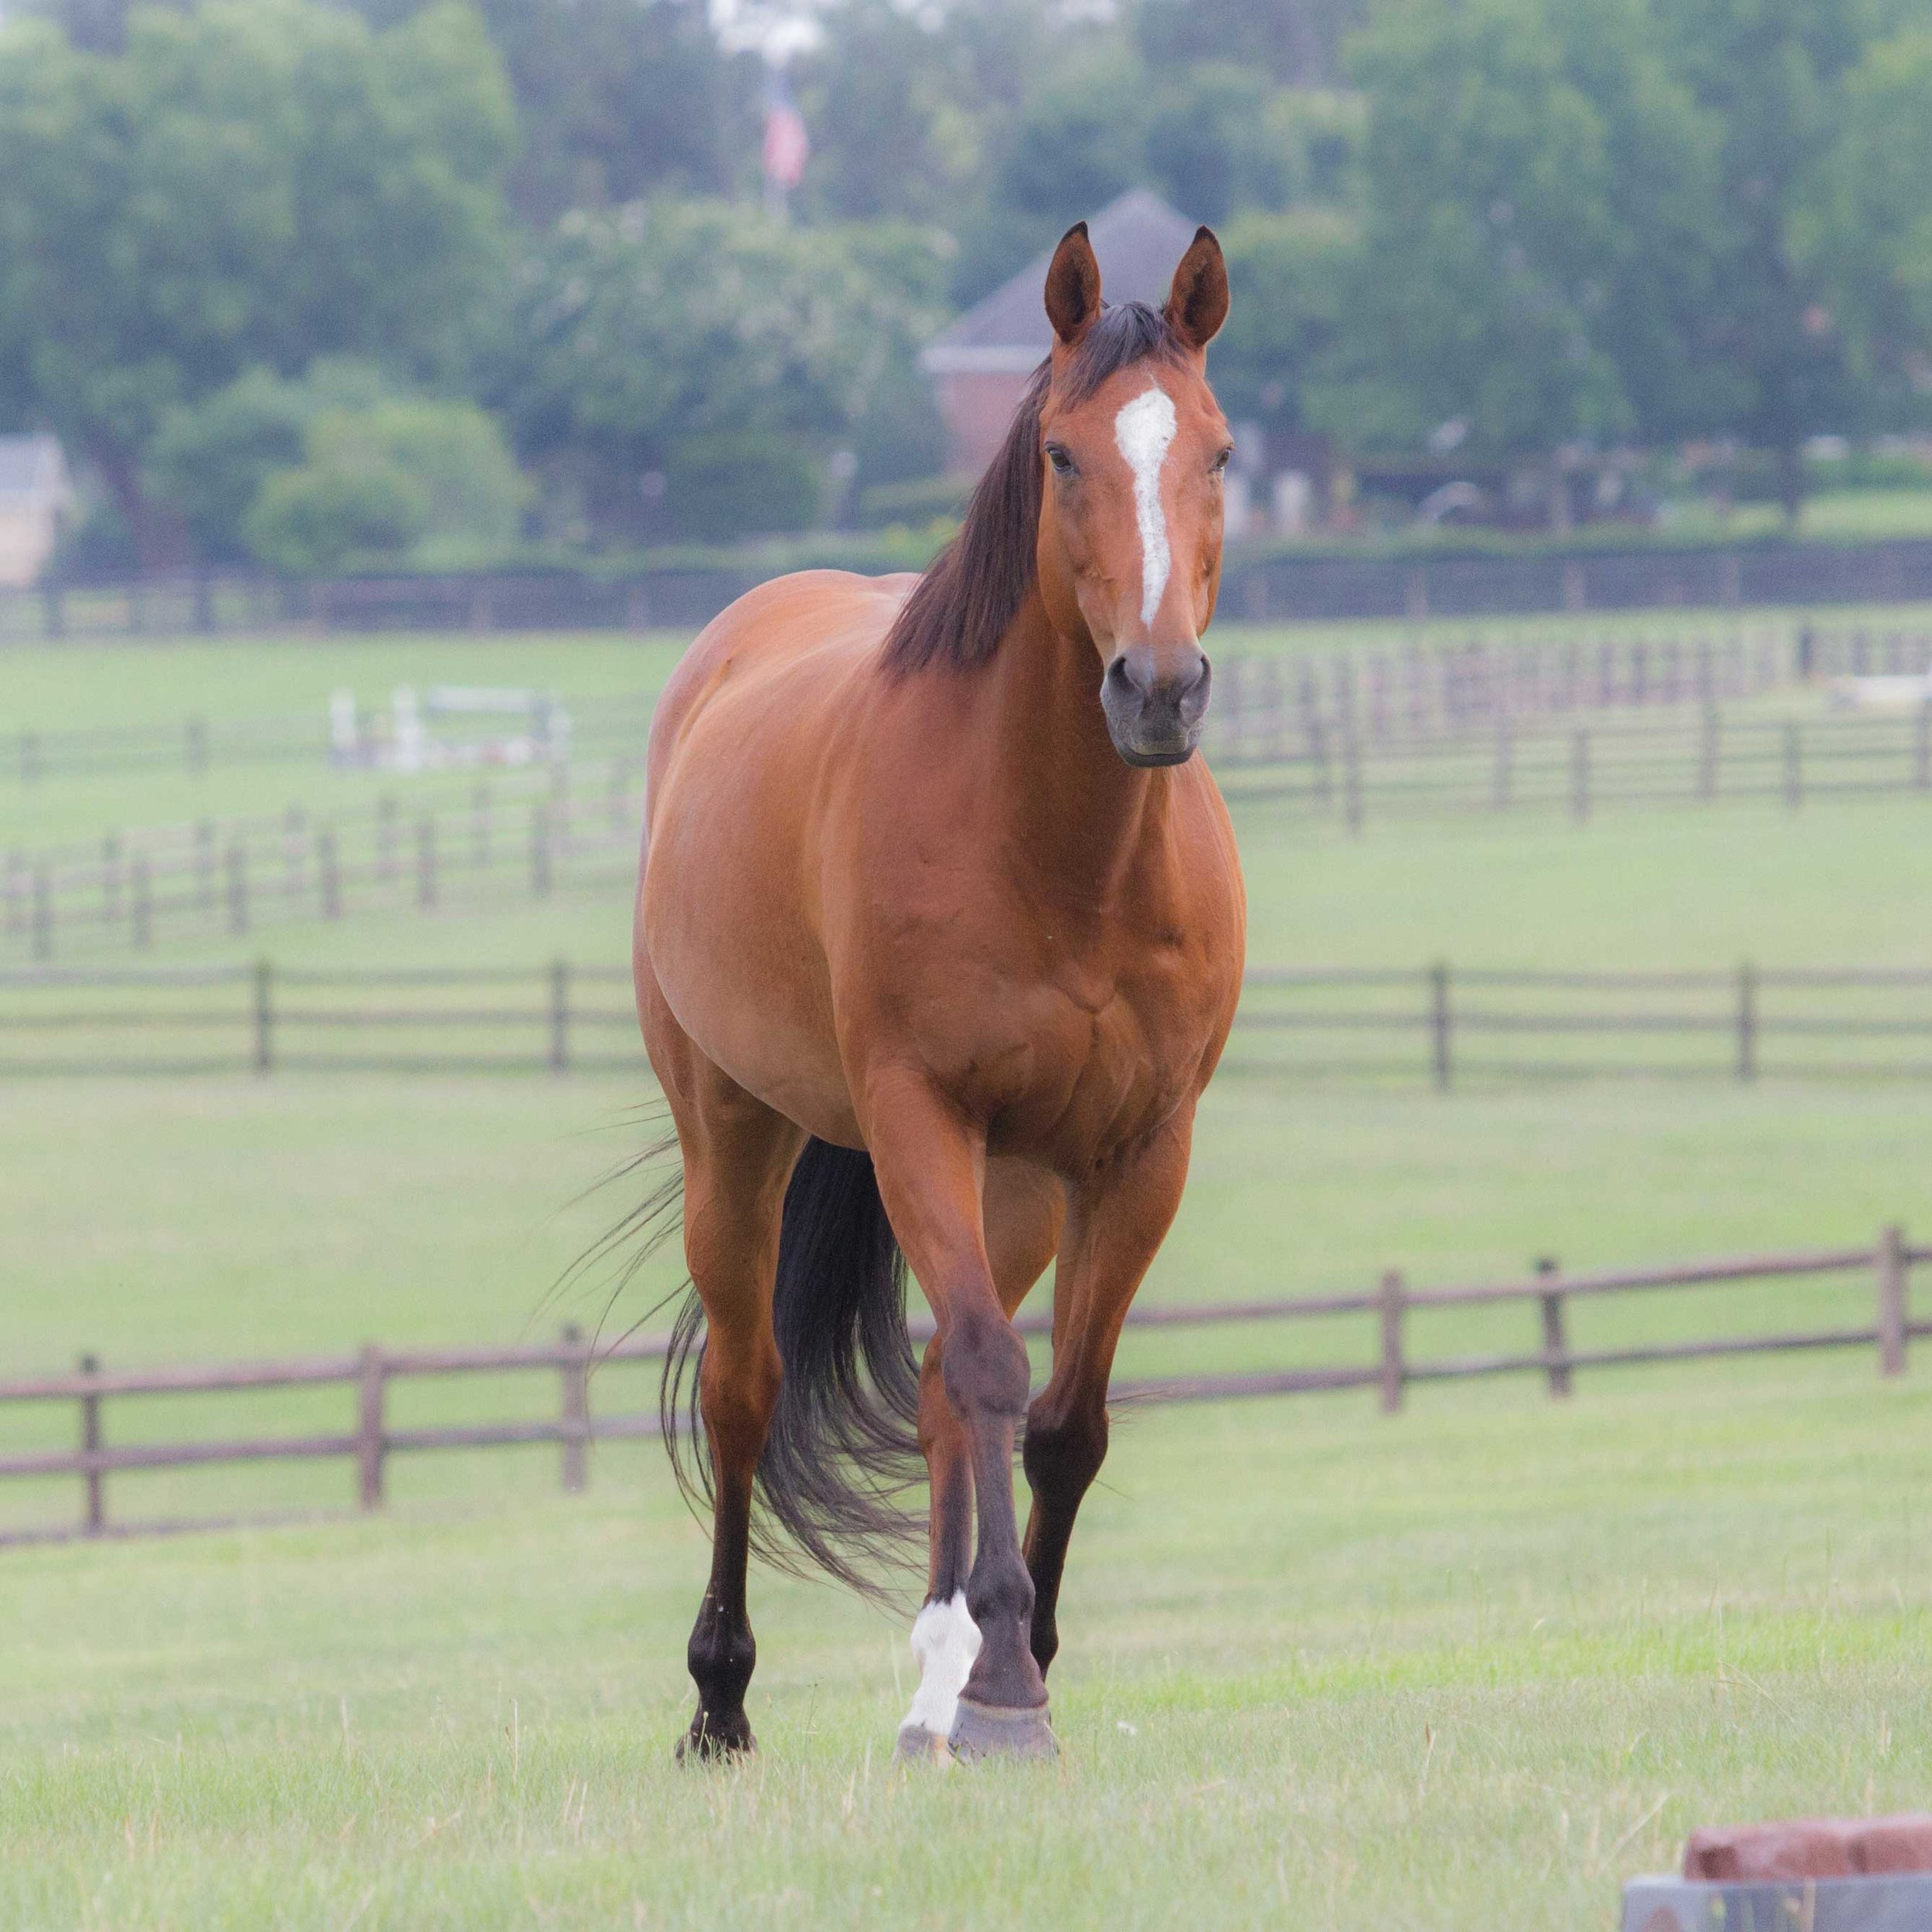 Our horse Tango running